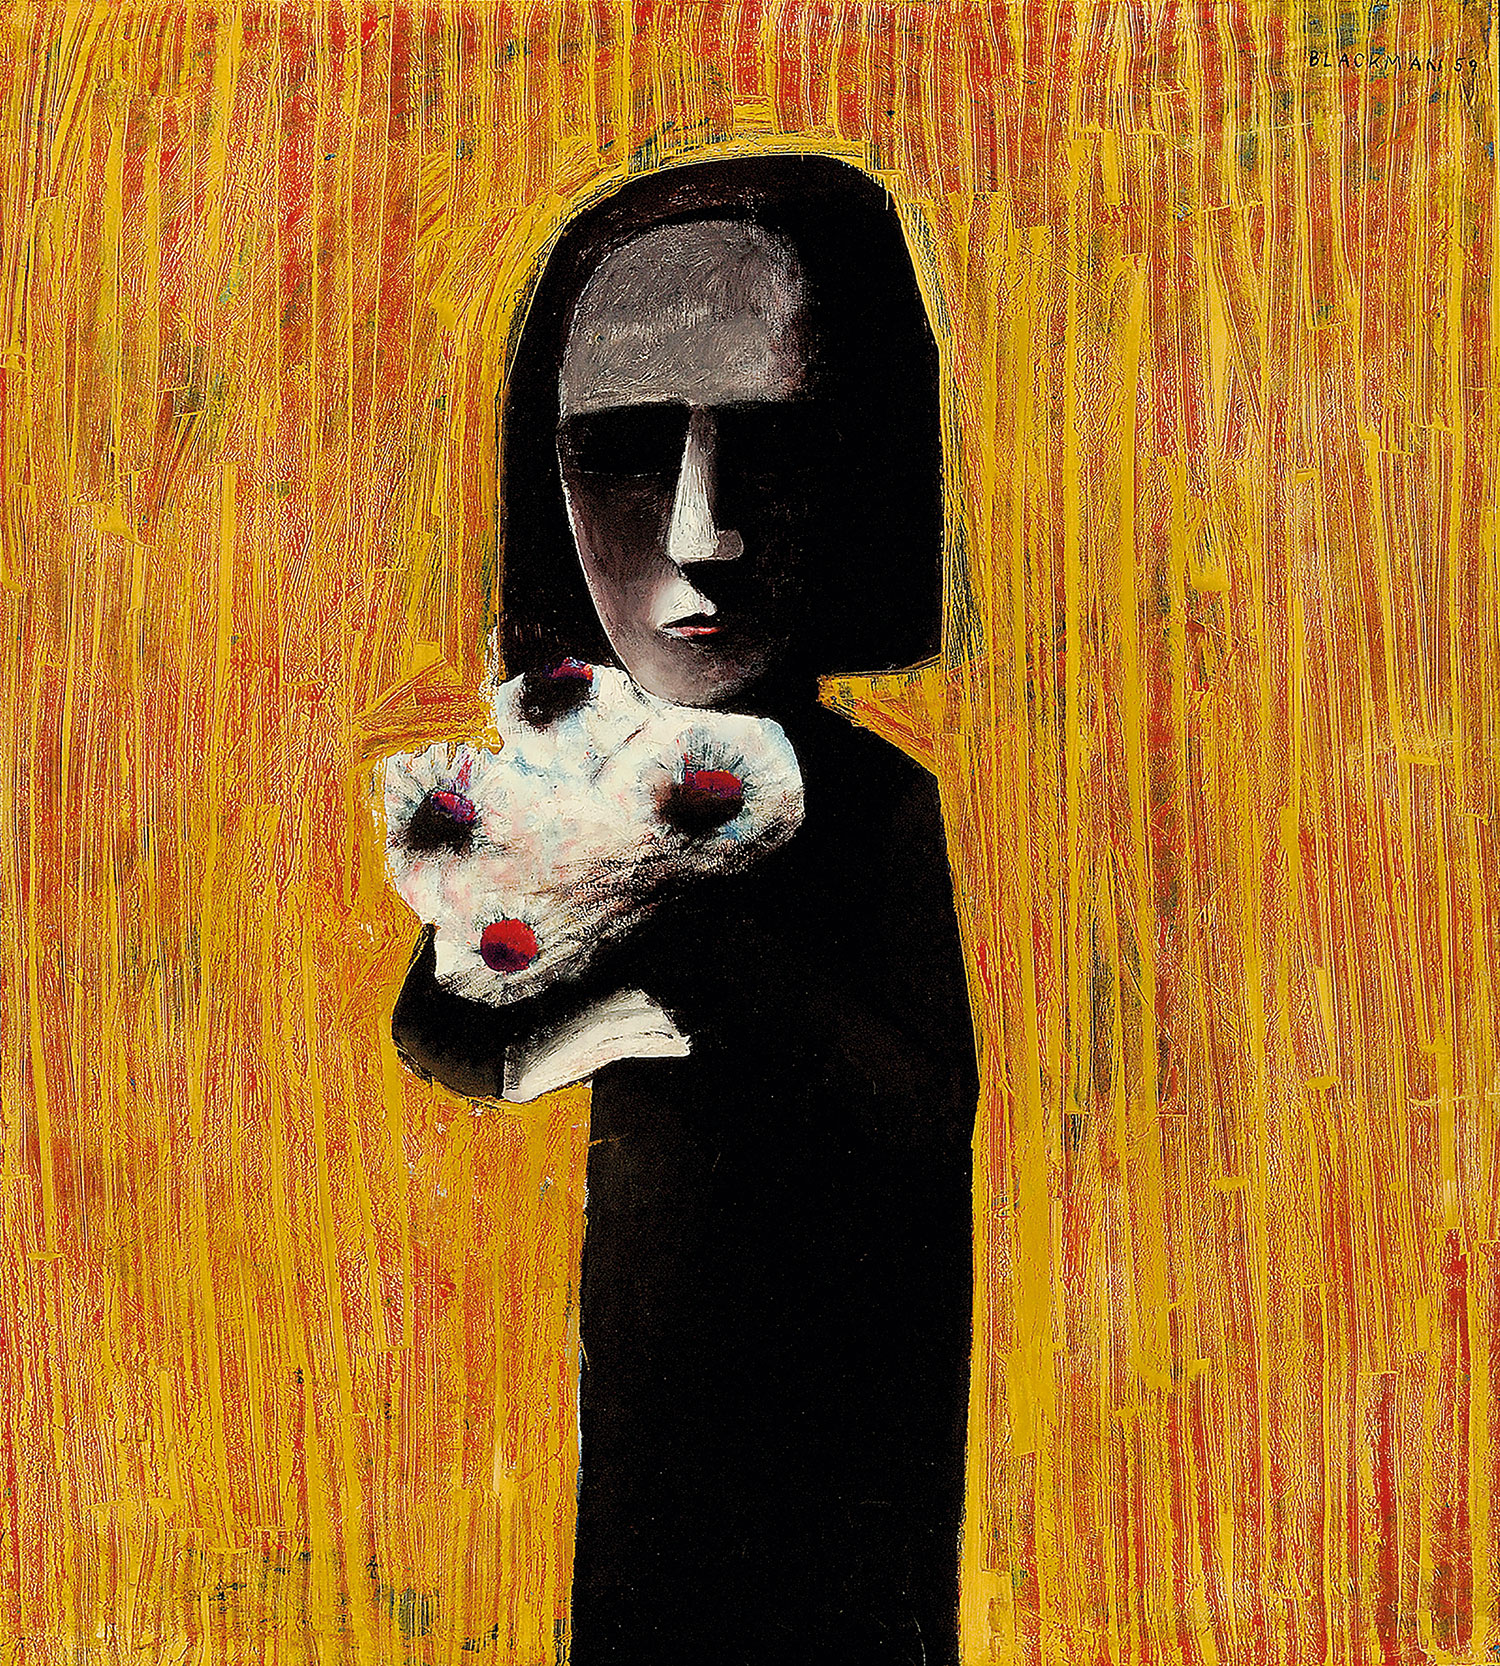 Charles Blackman, Girl with a Nosegay, 1959 Oil on composition board, 151.3 x 135.9cm TarraWarra Museum of Art collection Gift of Eva Besen AO and Marc Besen AO Donated through the Australian Government's Cultural Gifts Program, 2009 © Charles Blackman/Licensed by Viscopy, 2015